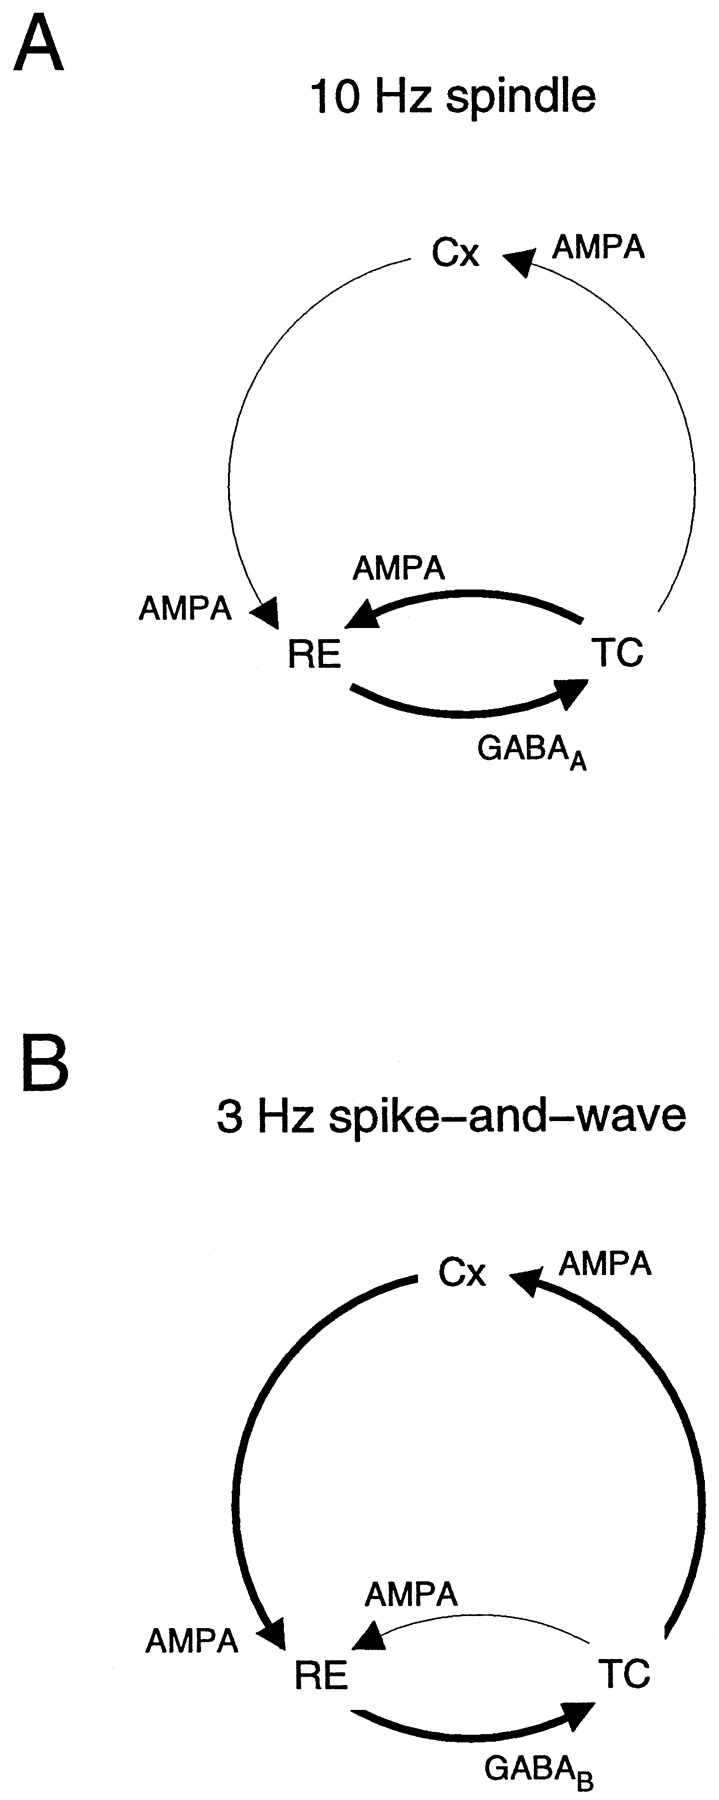 Spike-and-Wave Oscillations Based on the Properties of